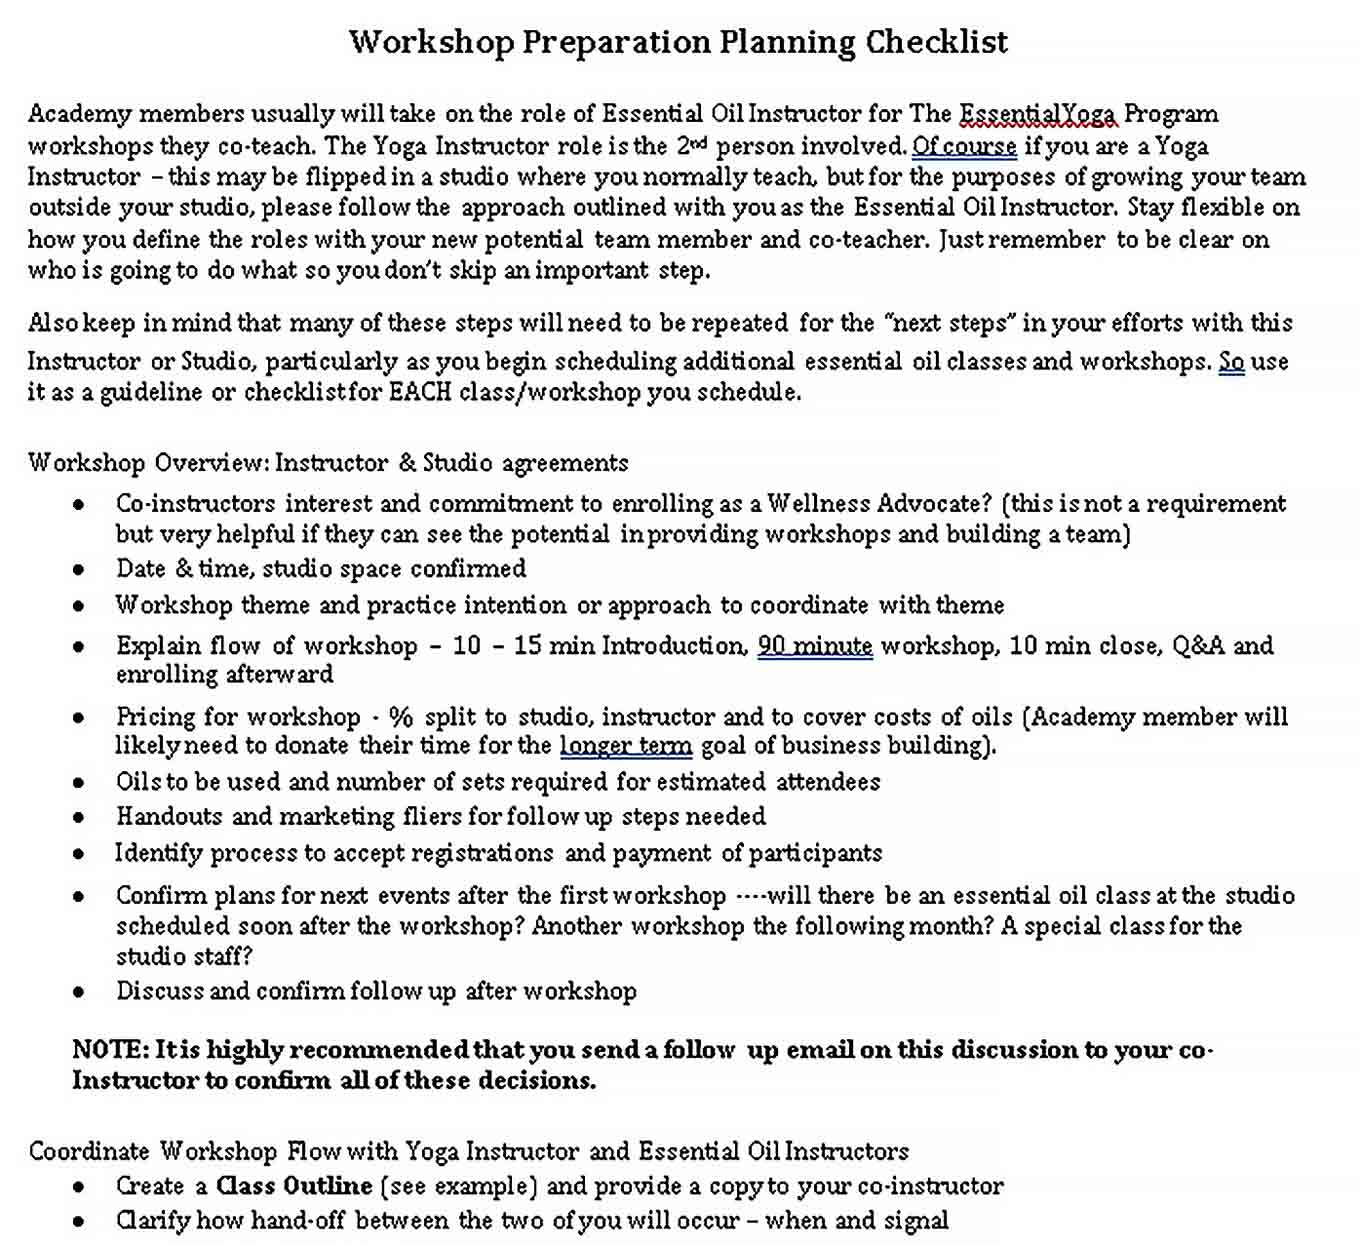 Template Workshop Preparation Planning Checklist